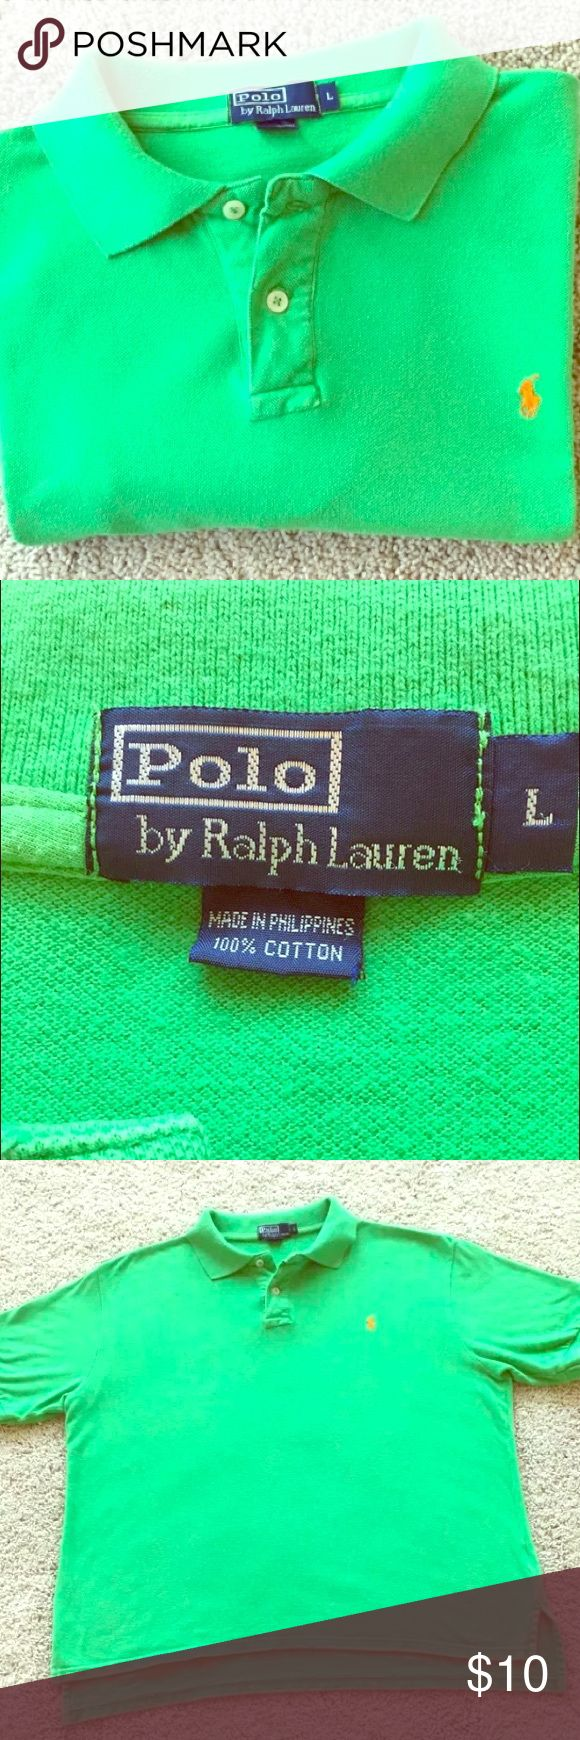 Ralph Lauren green polo shirt men In good condition, no stain or holes. Ralph Lauren green polo shirt Classic Fit Size large Two-buttons placket. Short sleeves with ribbed armbands Tennis tail: uneven hem that helps to keep the shirt in place when tucked in. Signature embroidered pony at the left chest. 100% cotton. Machine washable. Imported. Polo by Ralph Lauren Shirts Polos